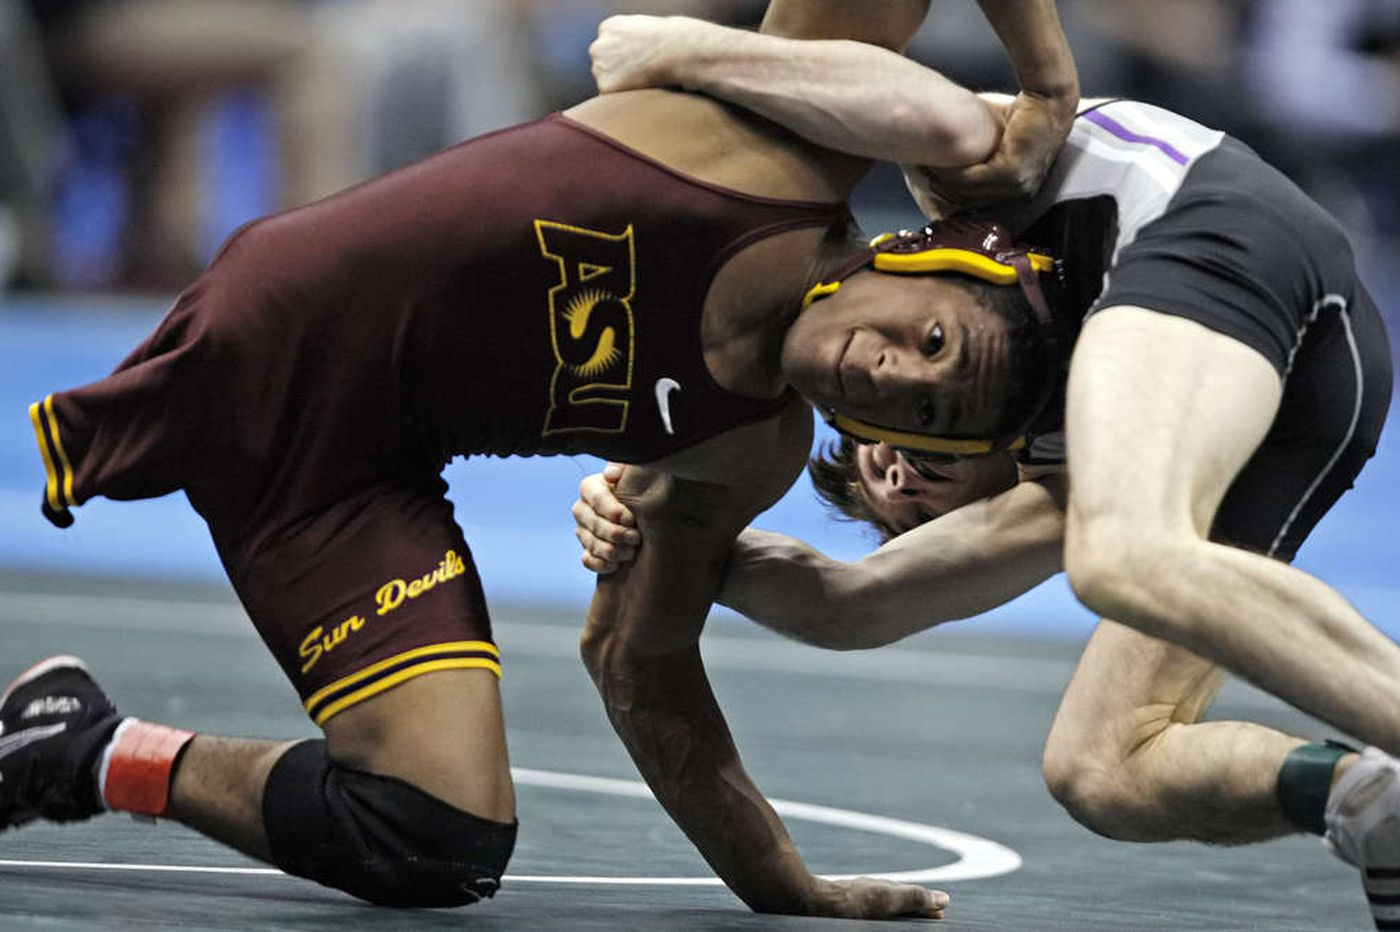 A courageous wrestler comes back to Philadelphia, this time for an award